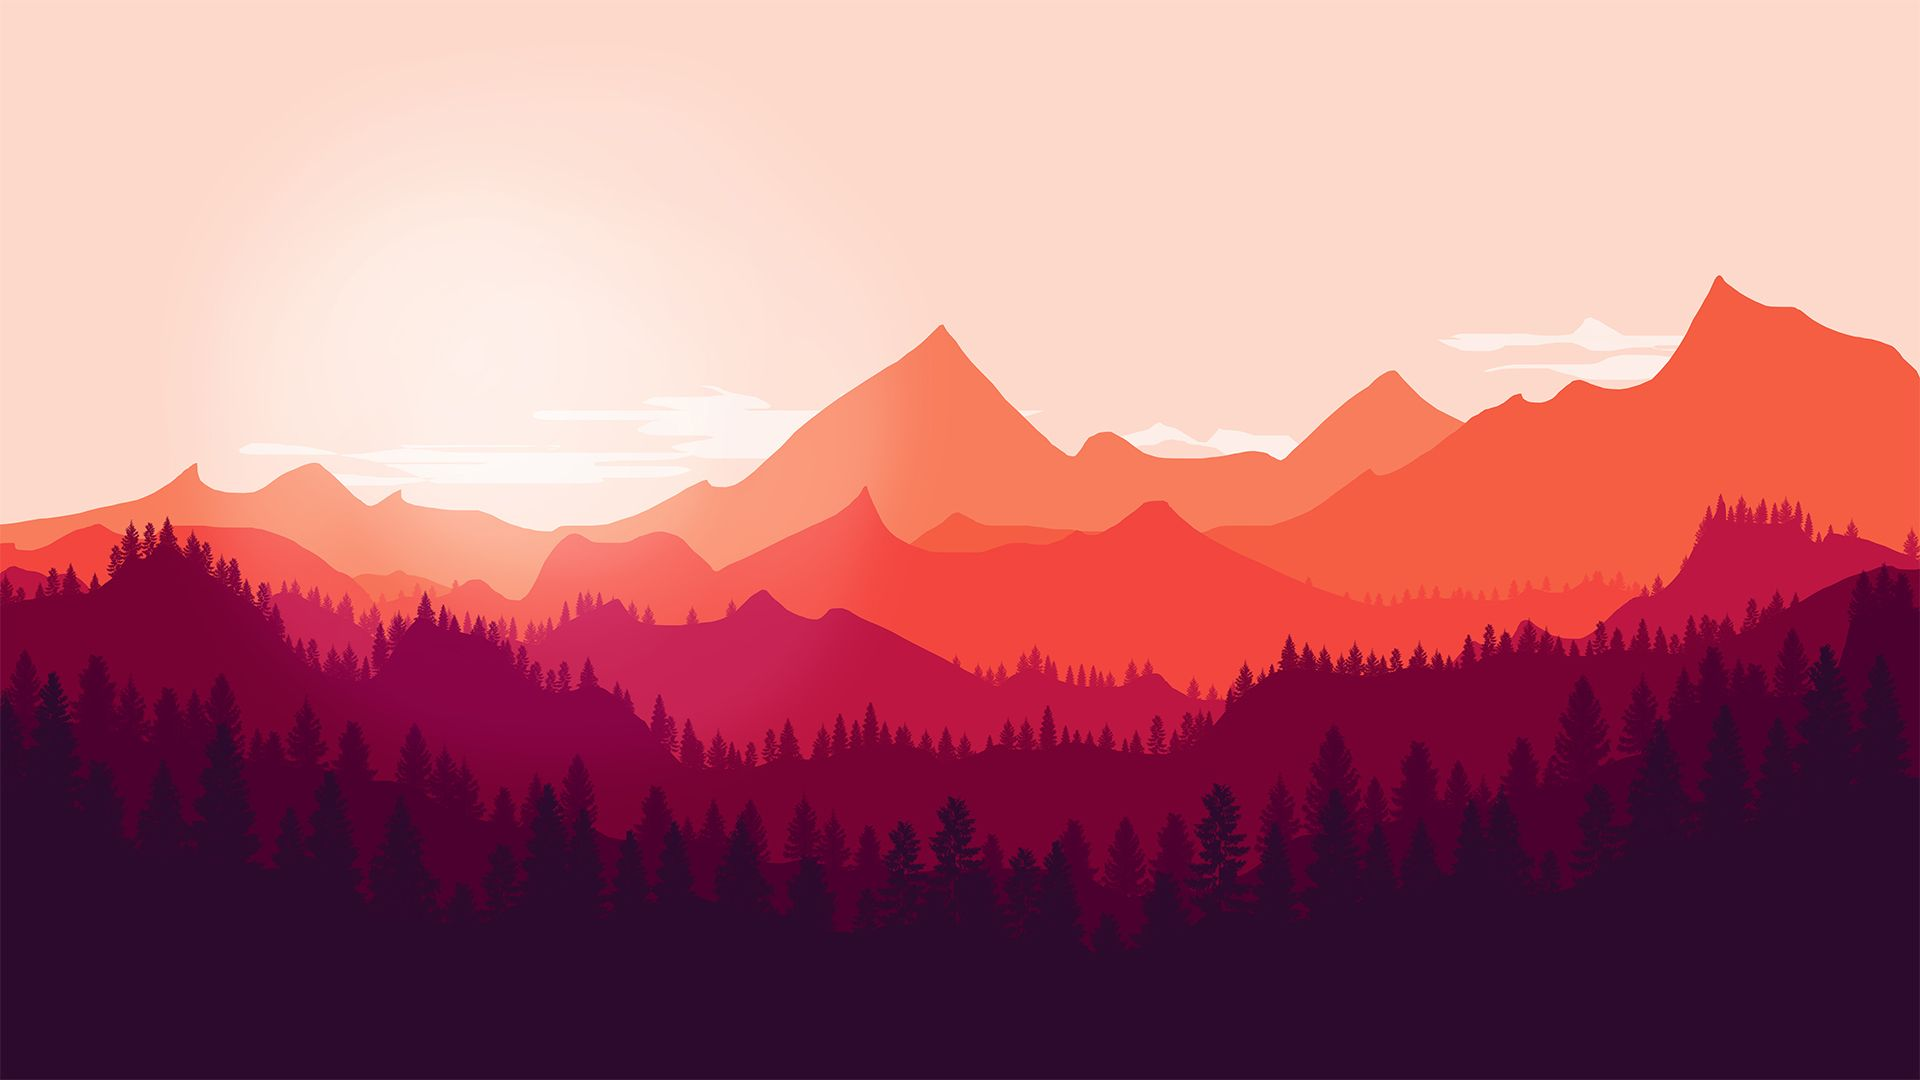 Free Mountain Vector background image